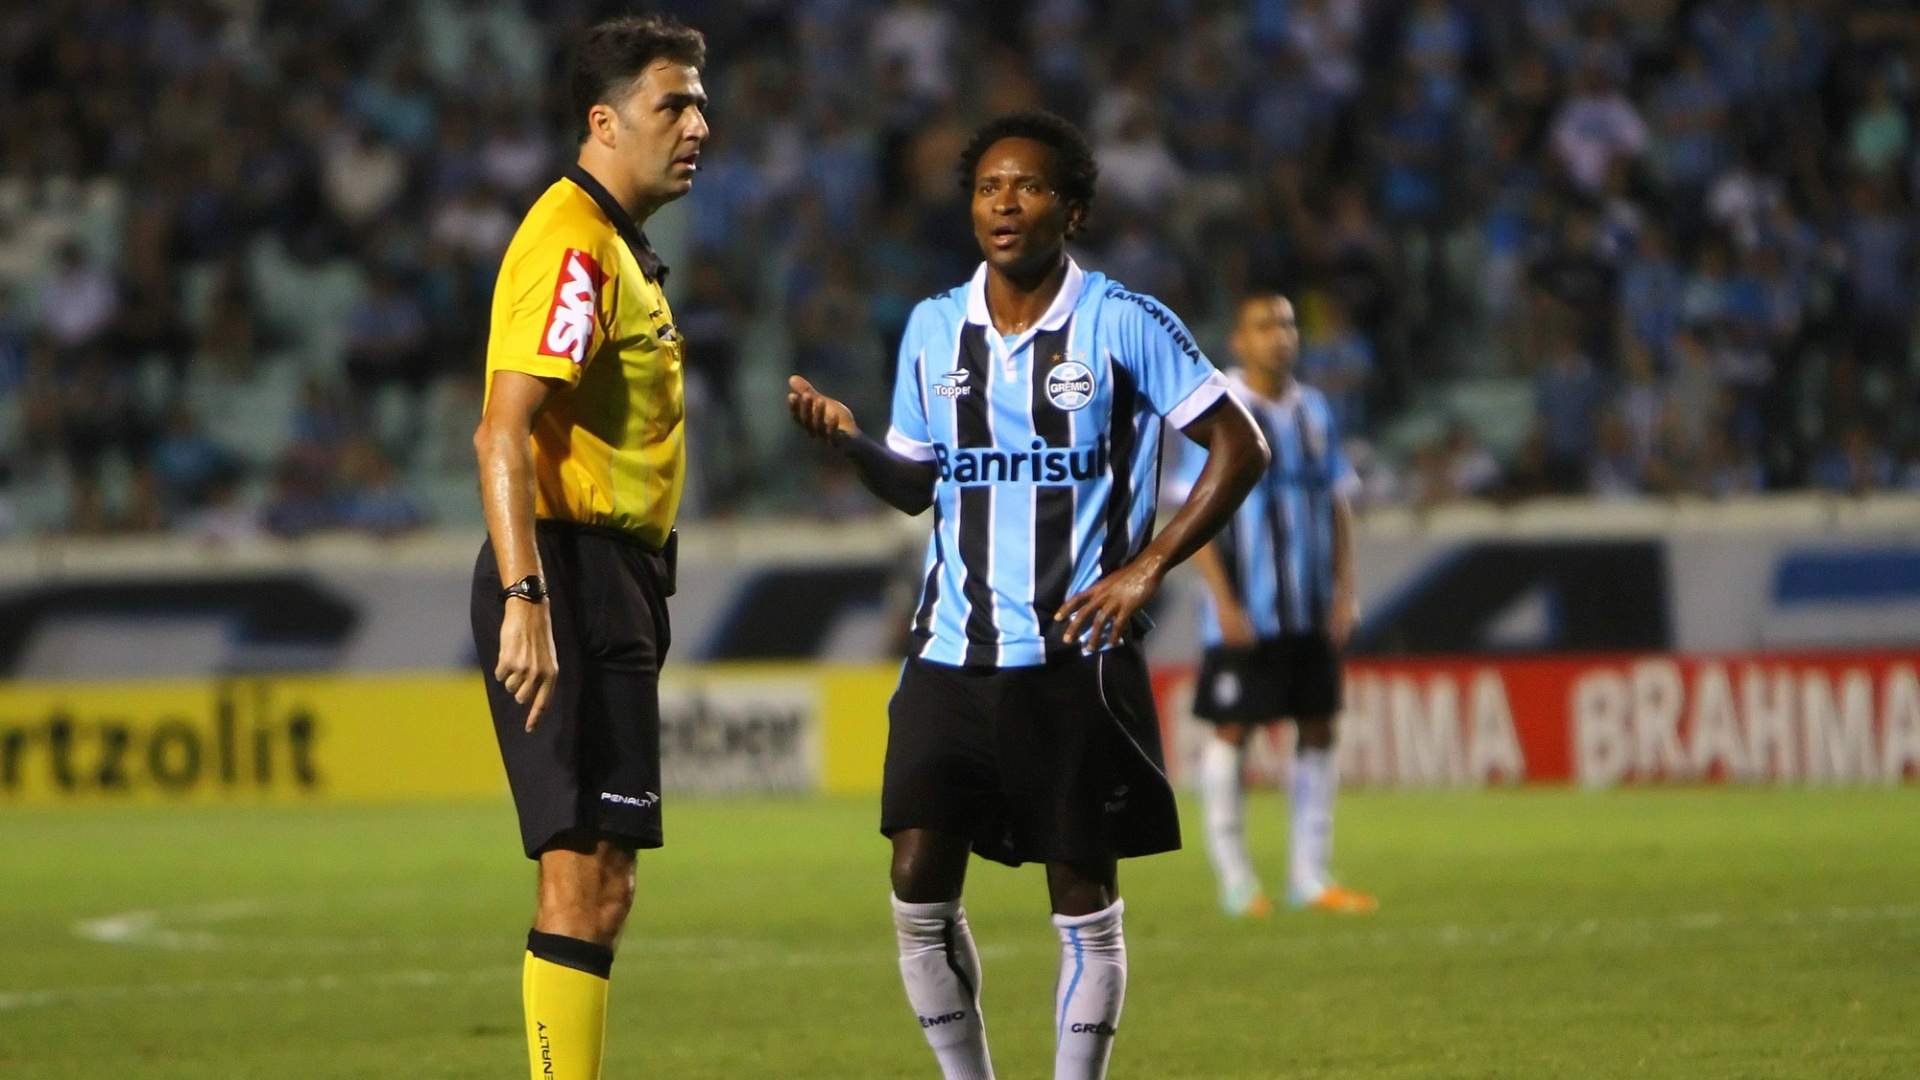 Z Roberto reclama com rbitro durante partida do Grmio contra o Coritiba no Olimpico